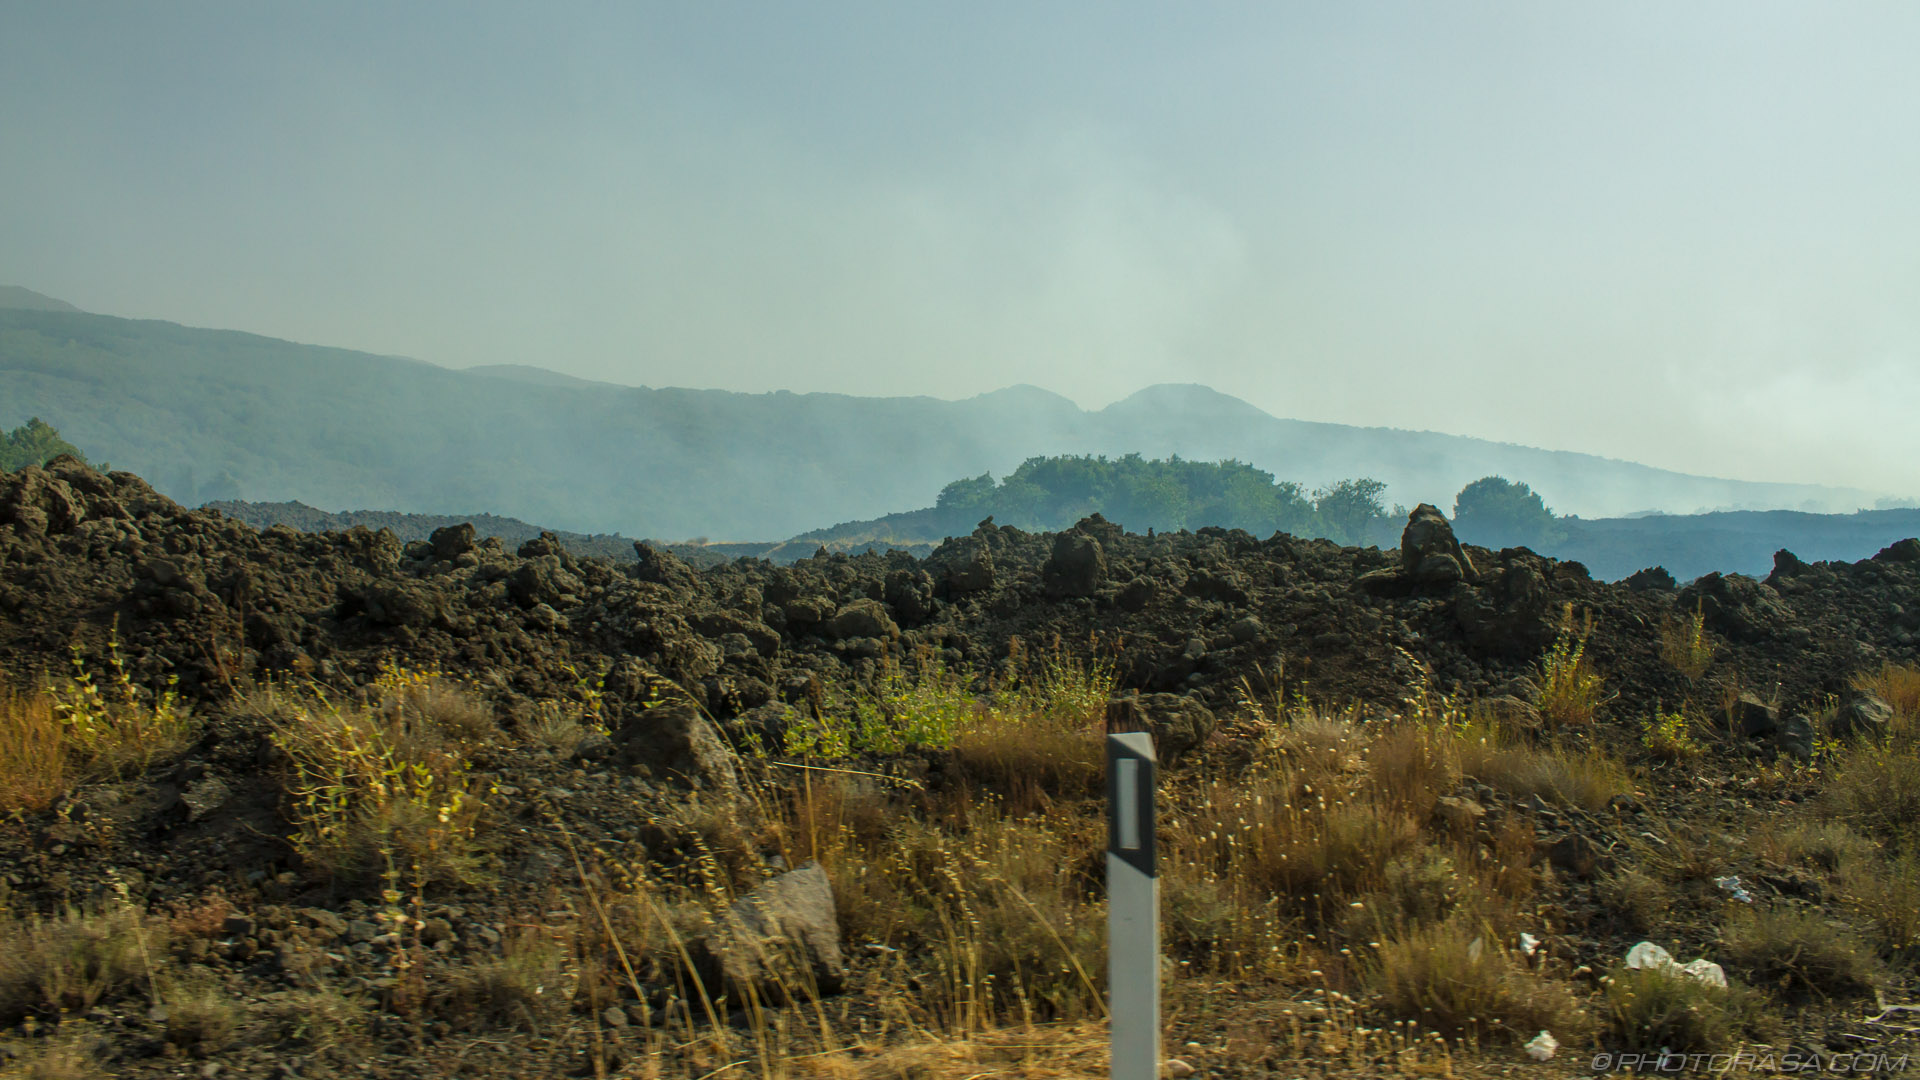 http://photorasa.com/nature/landscapes/sicilian-landscapes/attachment/sicily-summer-fires/